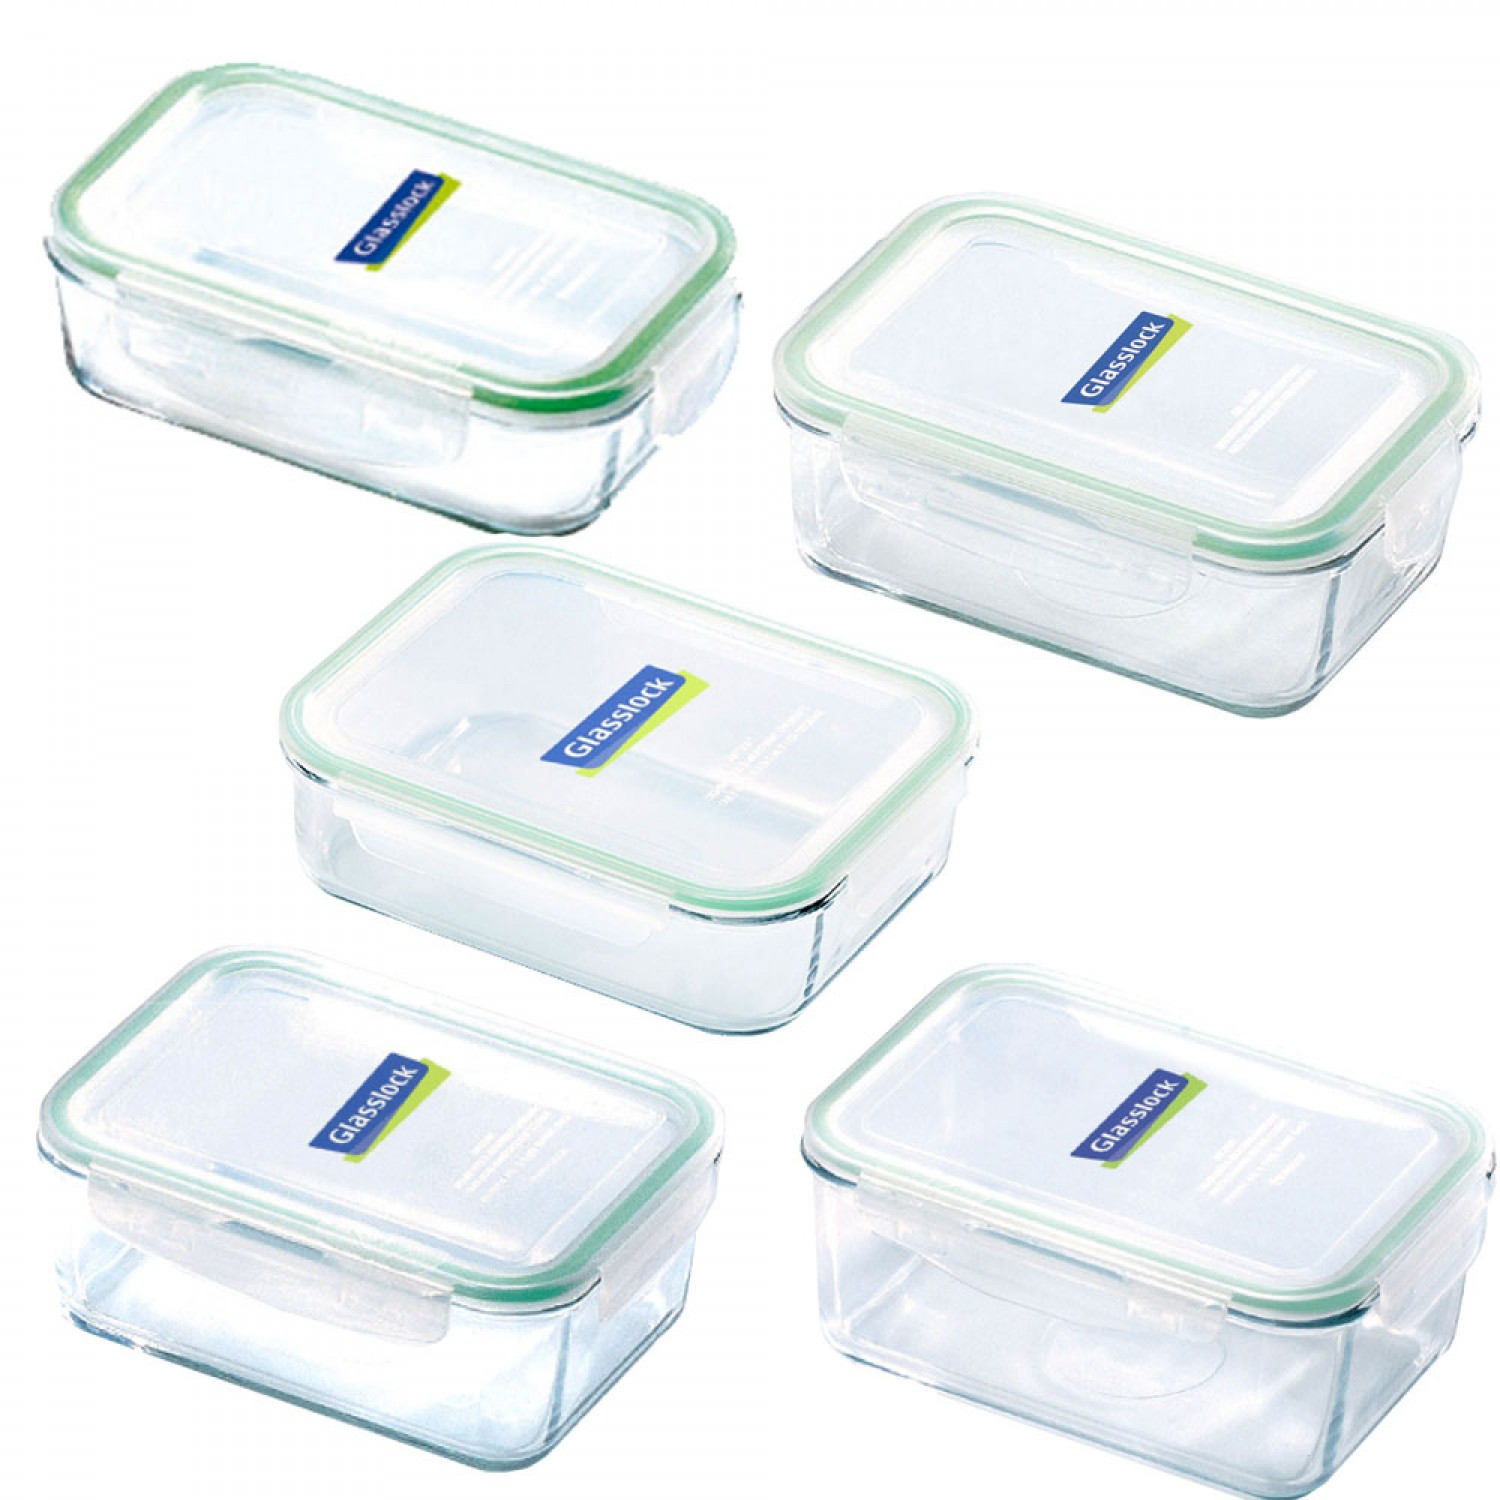 Classic Food Containers wide range by GlassLock Greenpicks